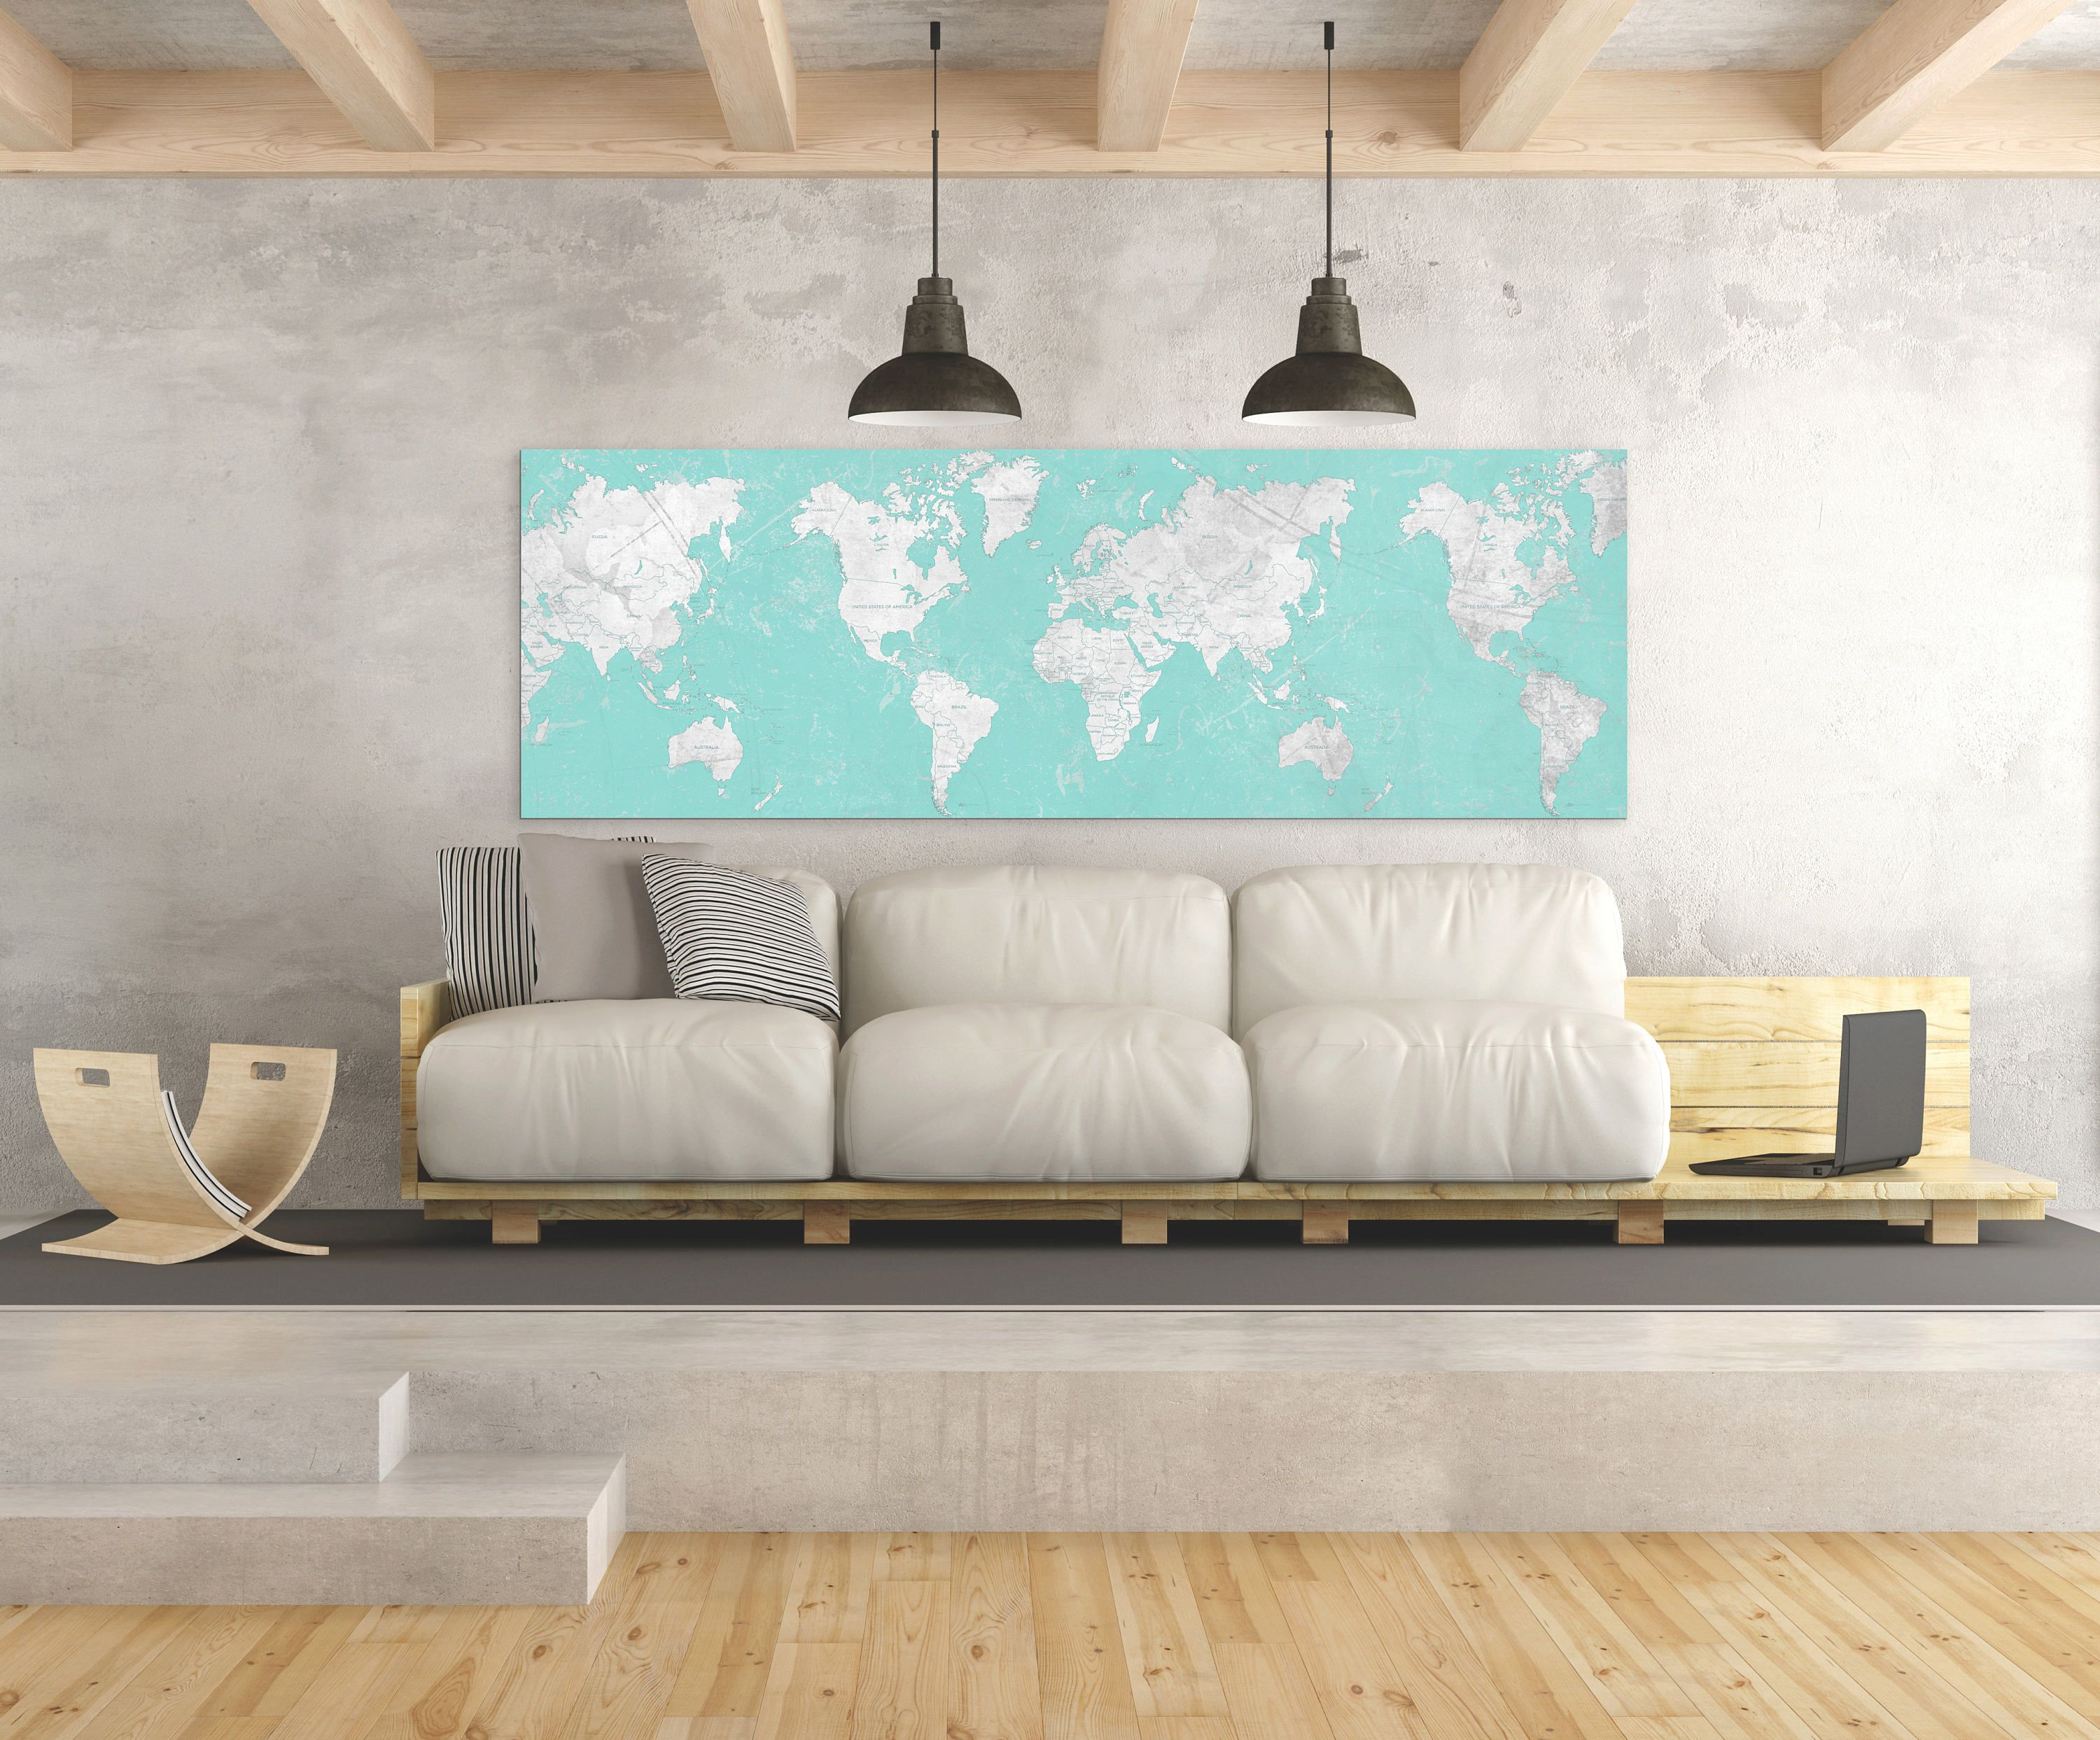 World map canvas print vintage map world map horizontal large world map canvas print vintage neutral light gray beige world map panoramic horizontal long wall art vintage oversized wall art decor poster gumiabroncs Choice Image